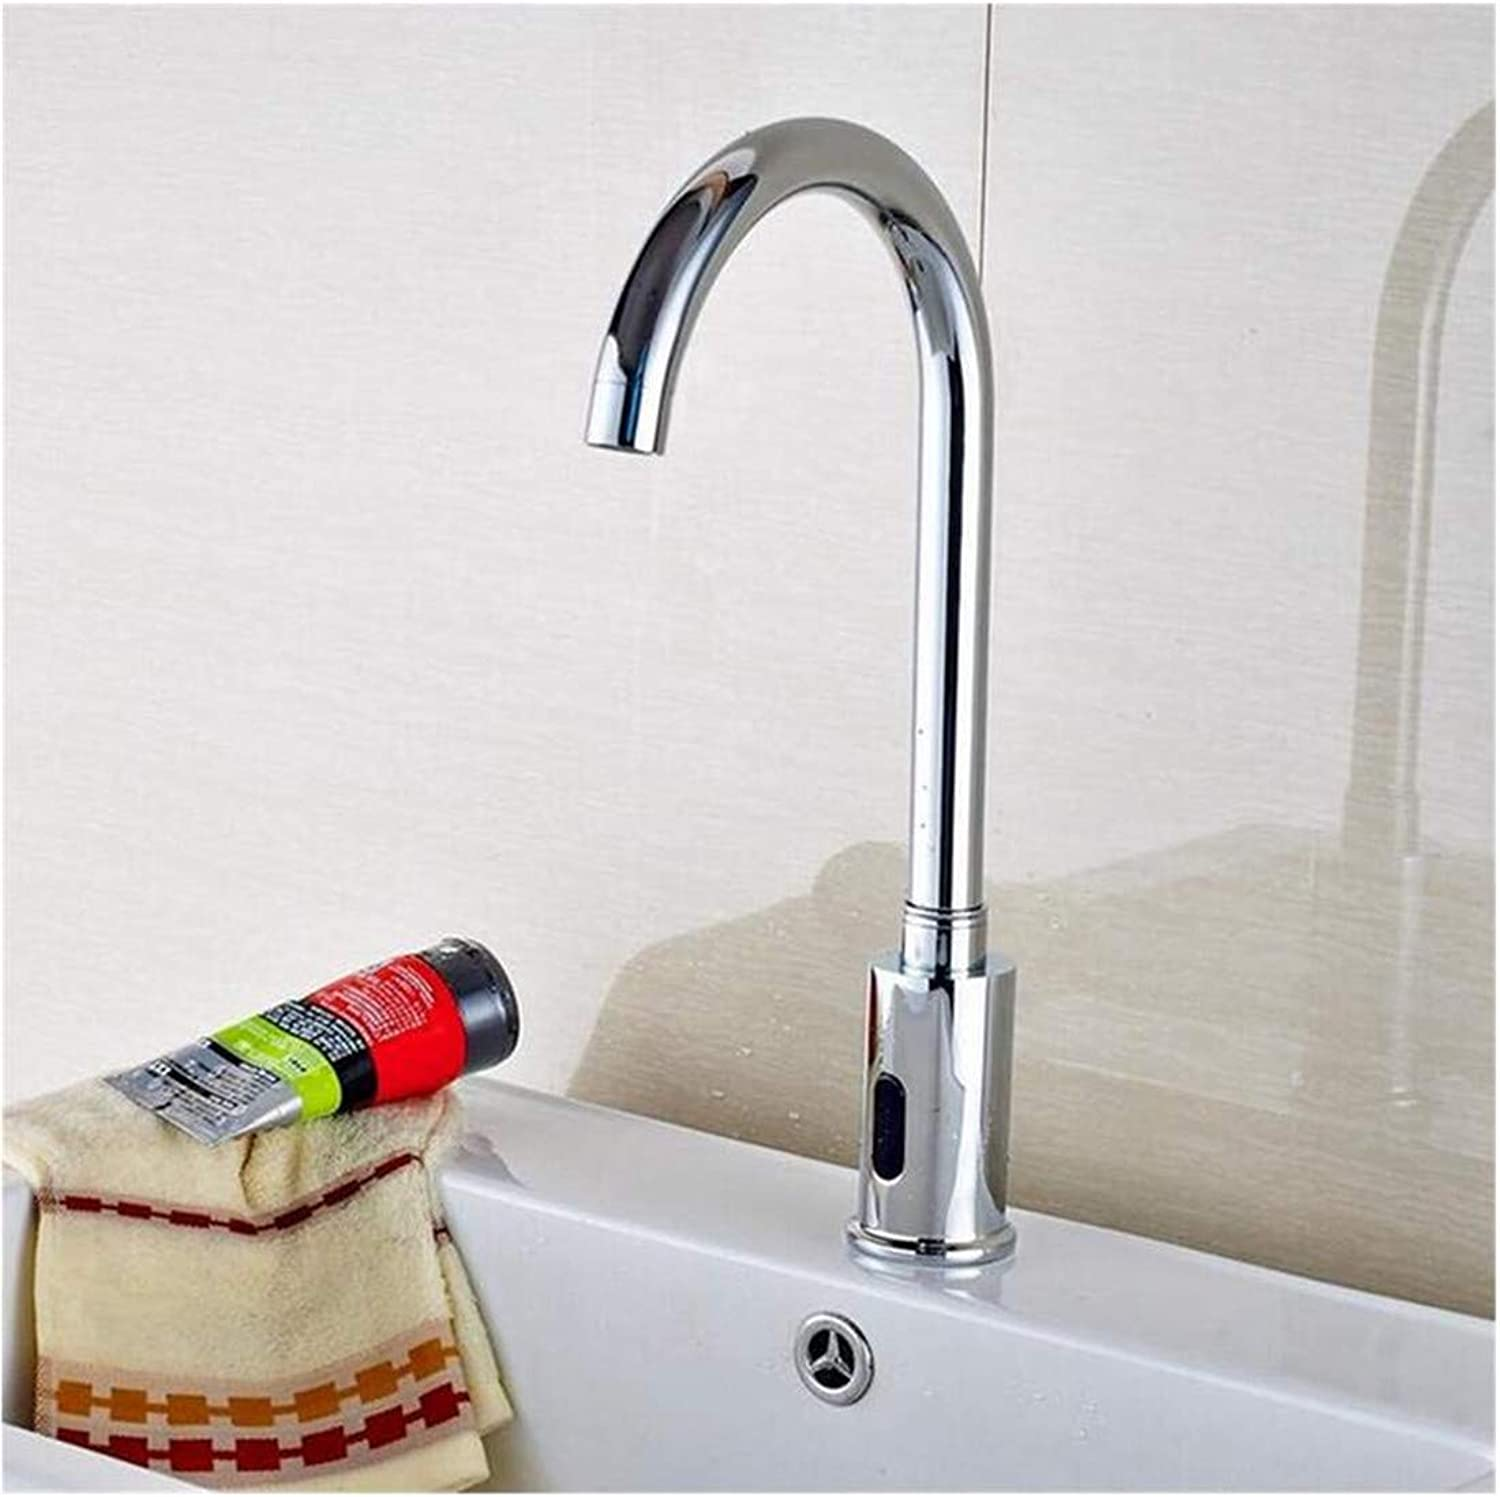 Stainless Steel Vintage Brass Faucet Polished Chrome Bathroom Touchless Cold Tap